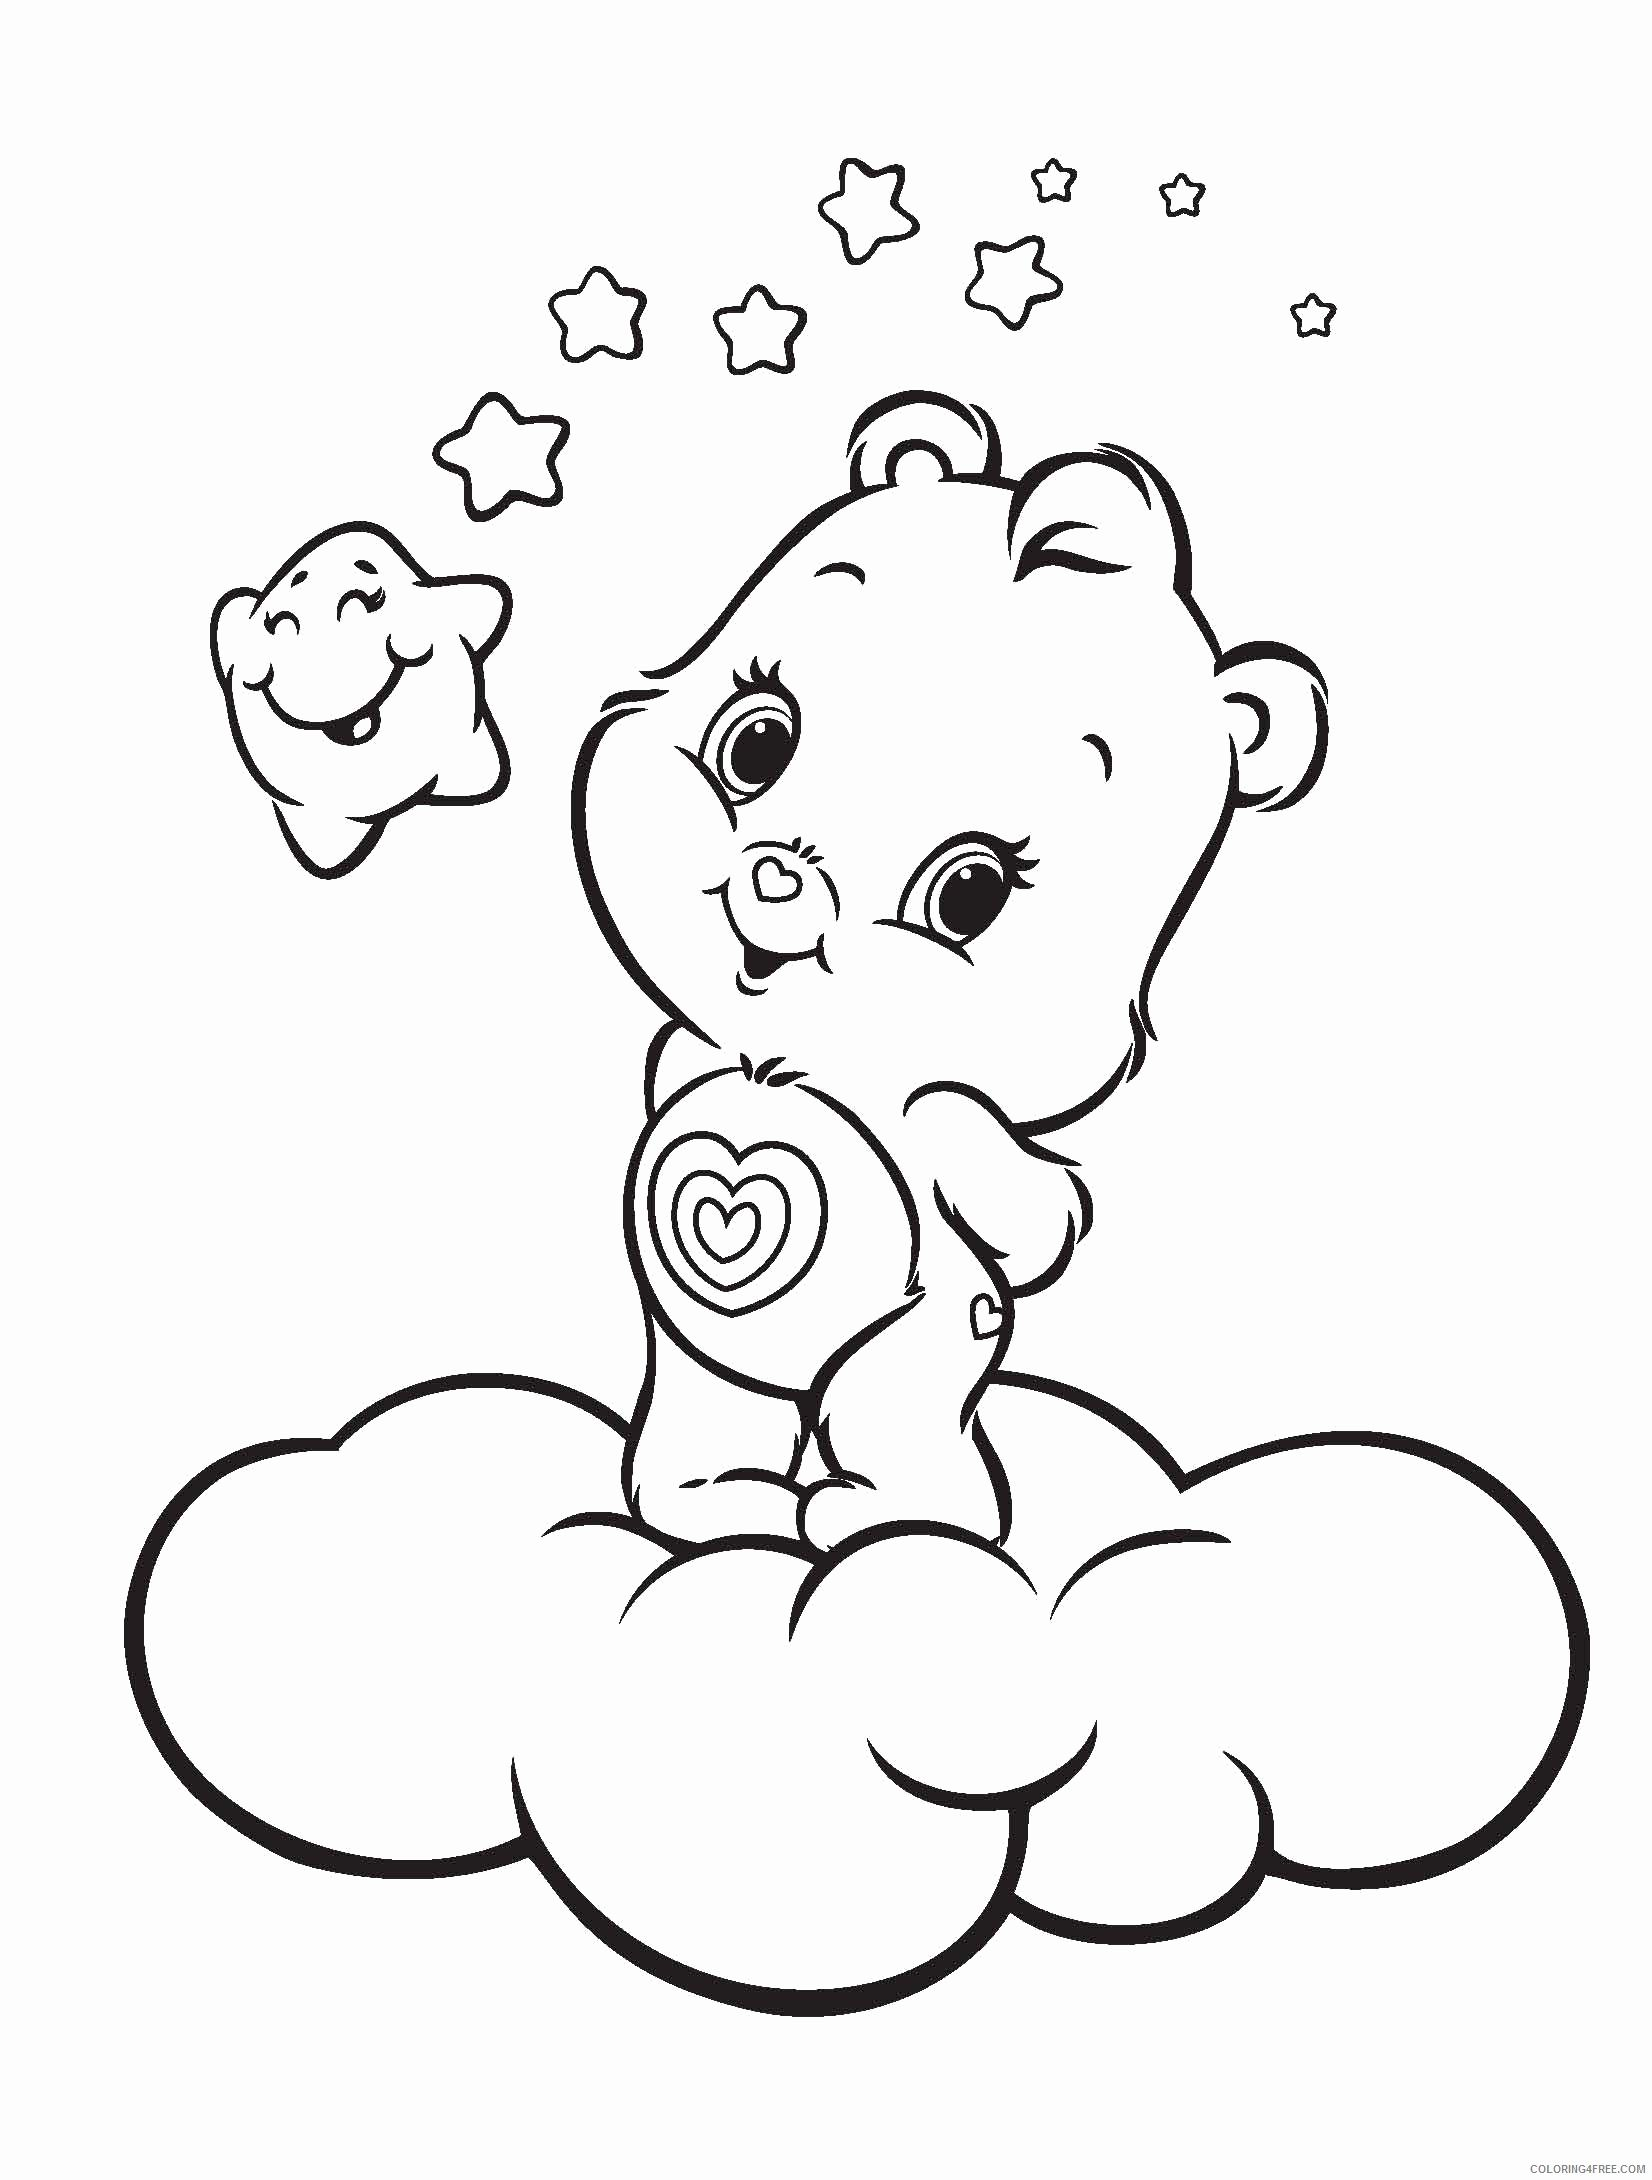 Care Bear Coloring Book Awesome Coloring Pages Care Bears